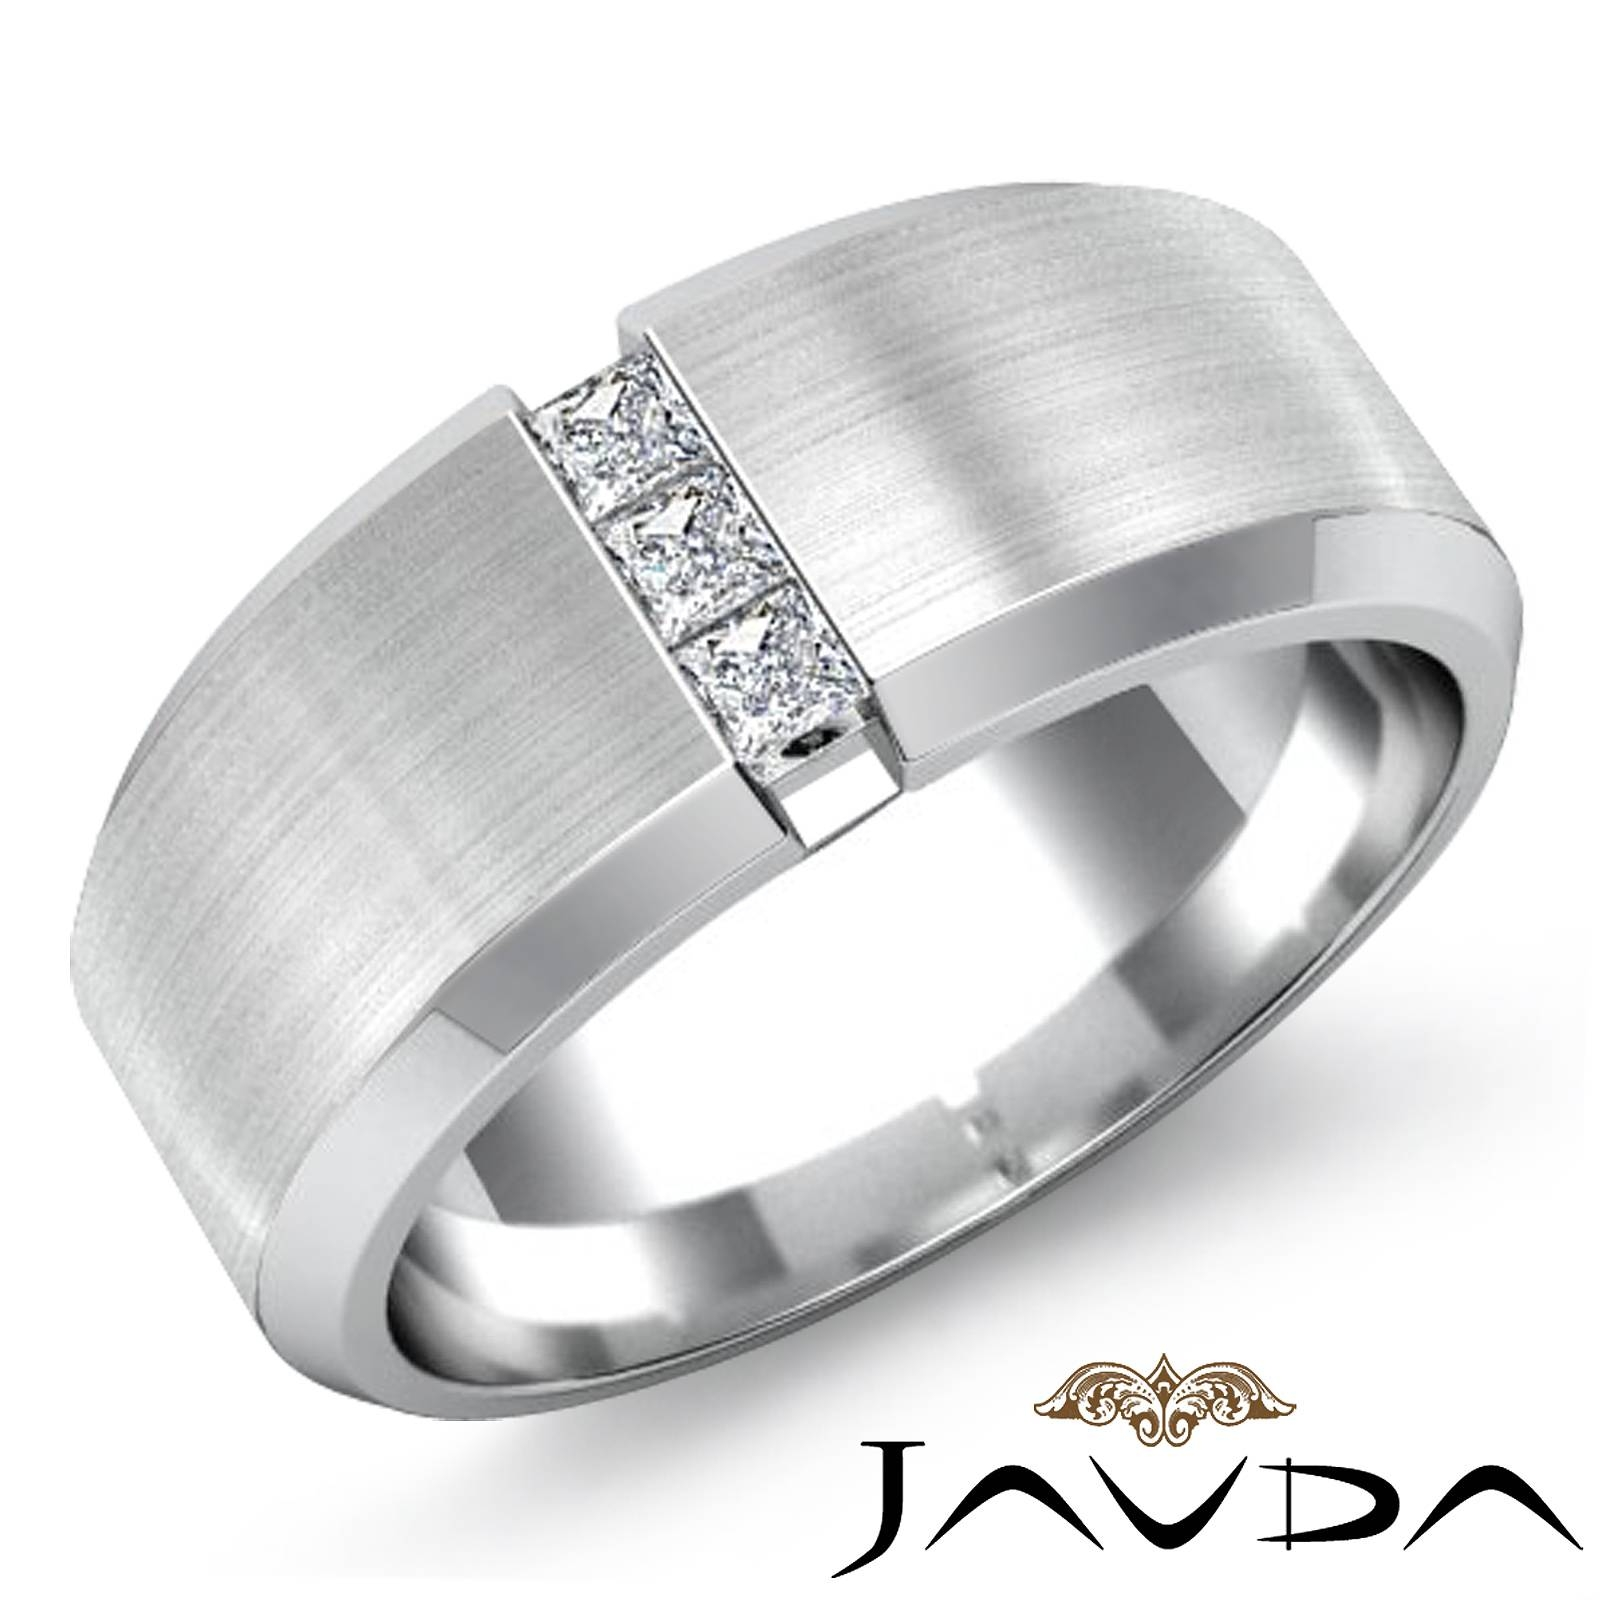 Engagement Rings : Amazing Engagement Ring Band Styles Mens Gold Throughout Men's Wedding Bands Styles (View 8 of 15)